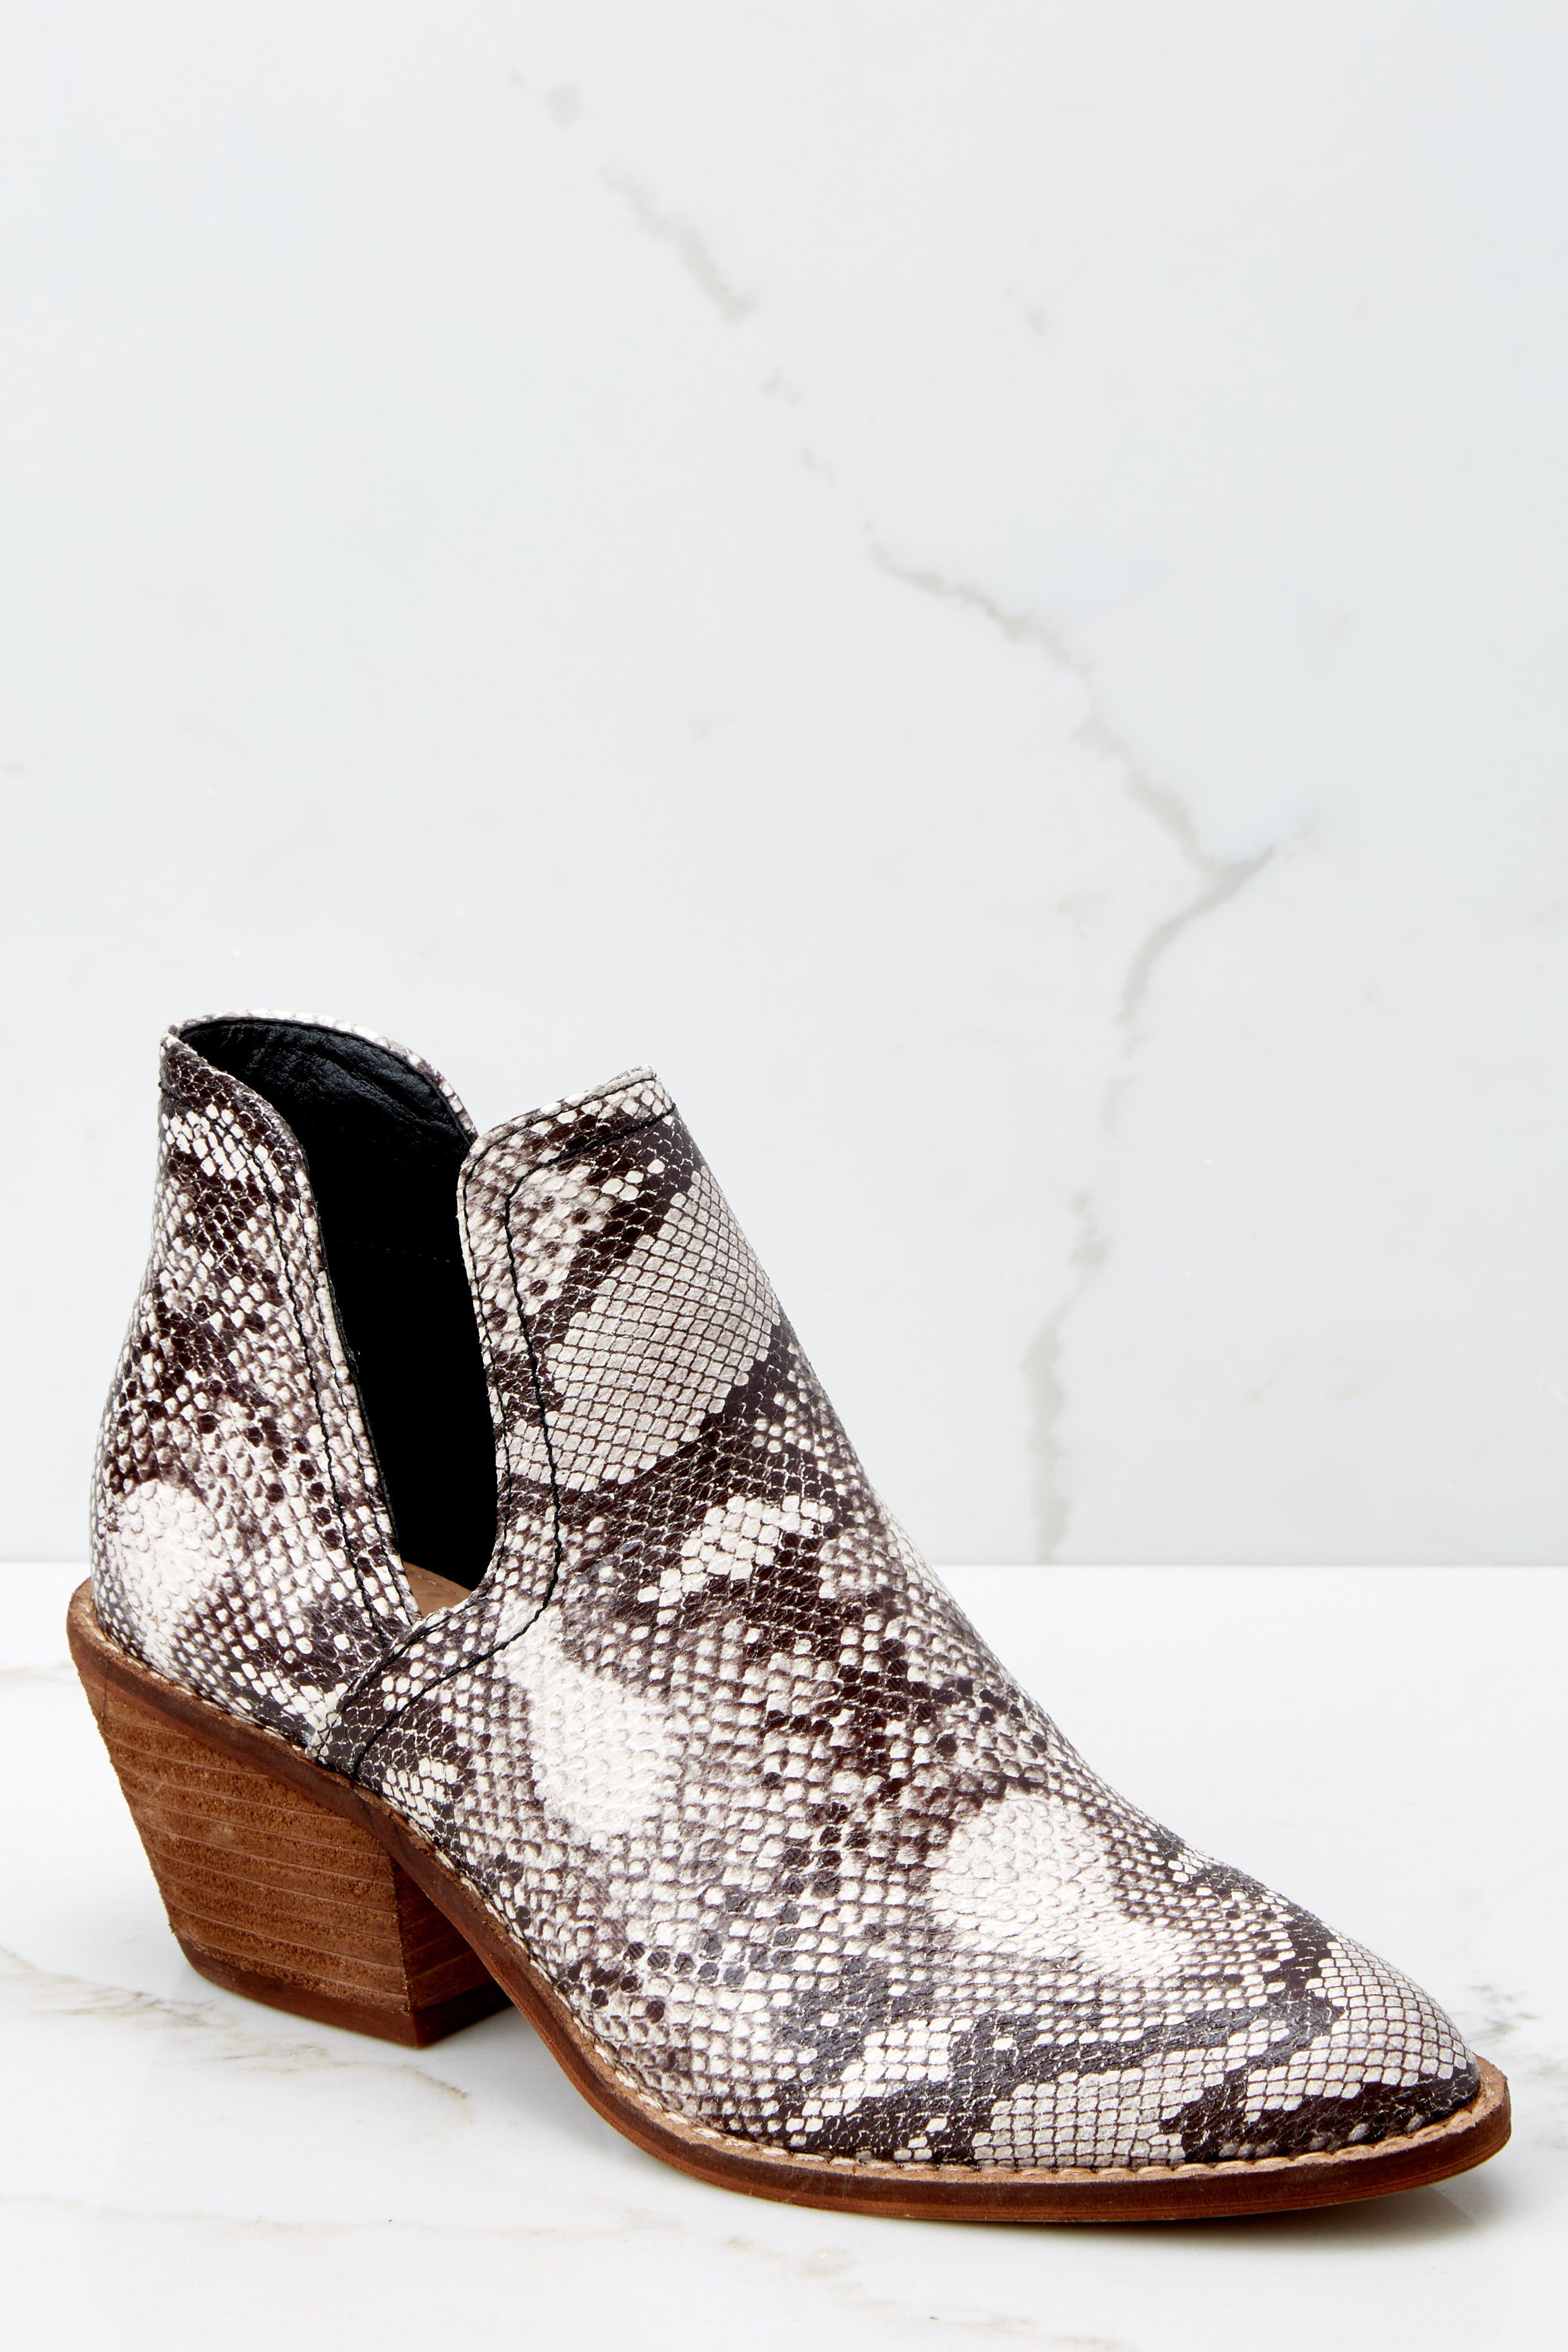 da229470d8ad Sexy Grey Snake Print Booties - High Heeled Ankle Boots - Shoes ...